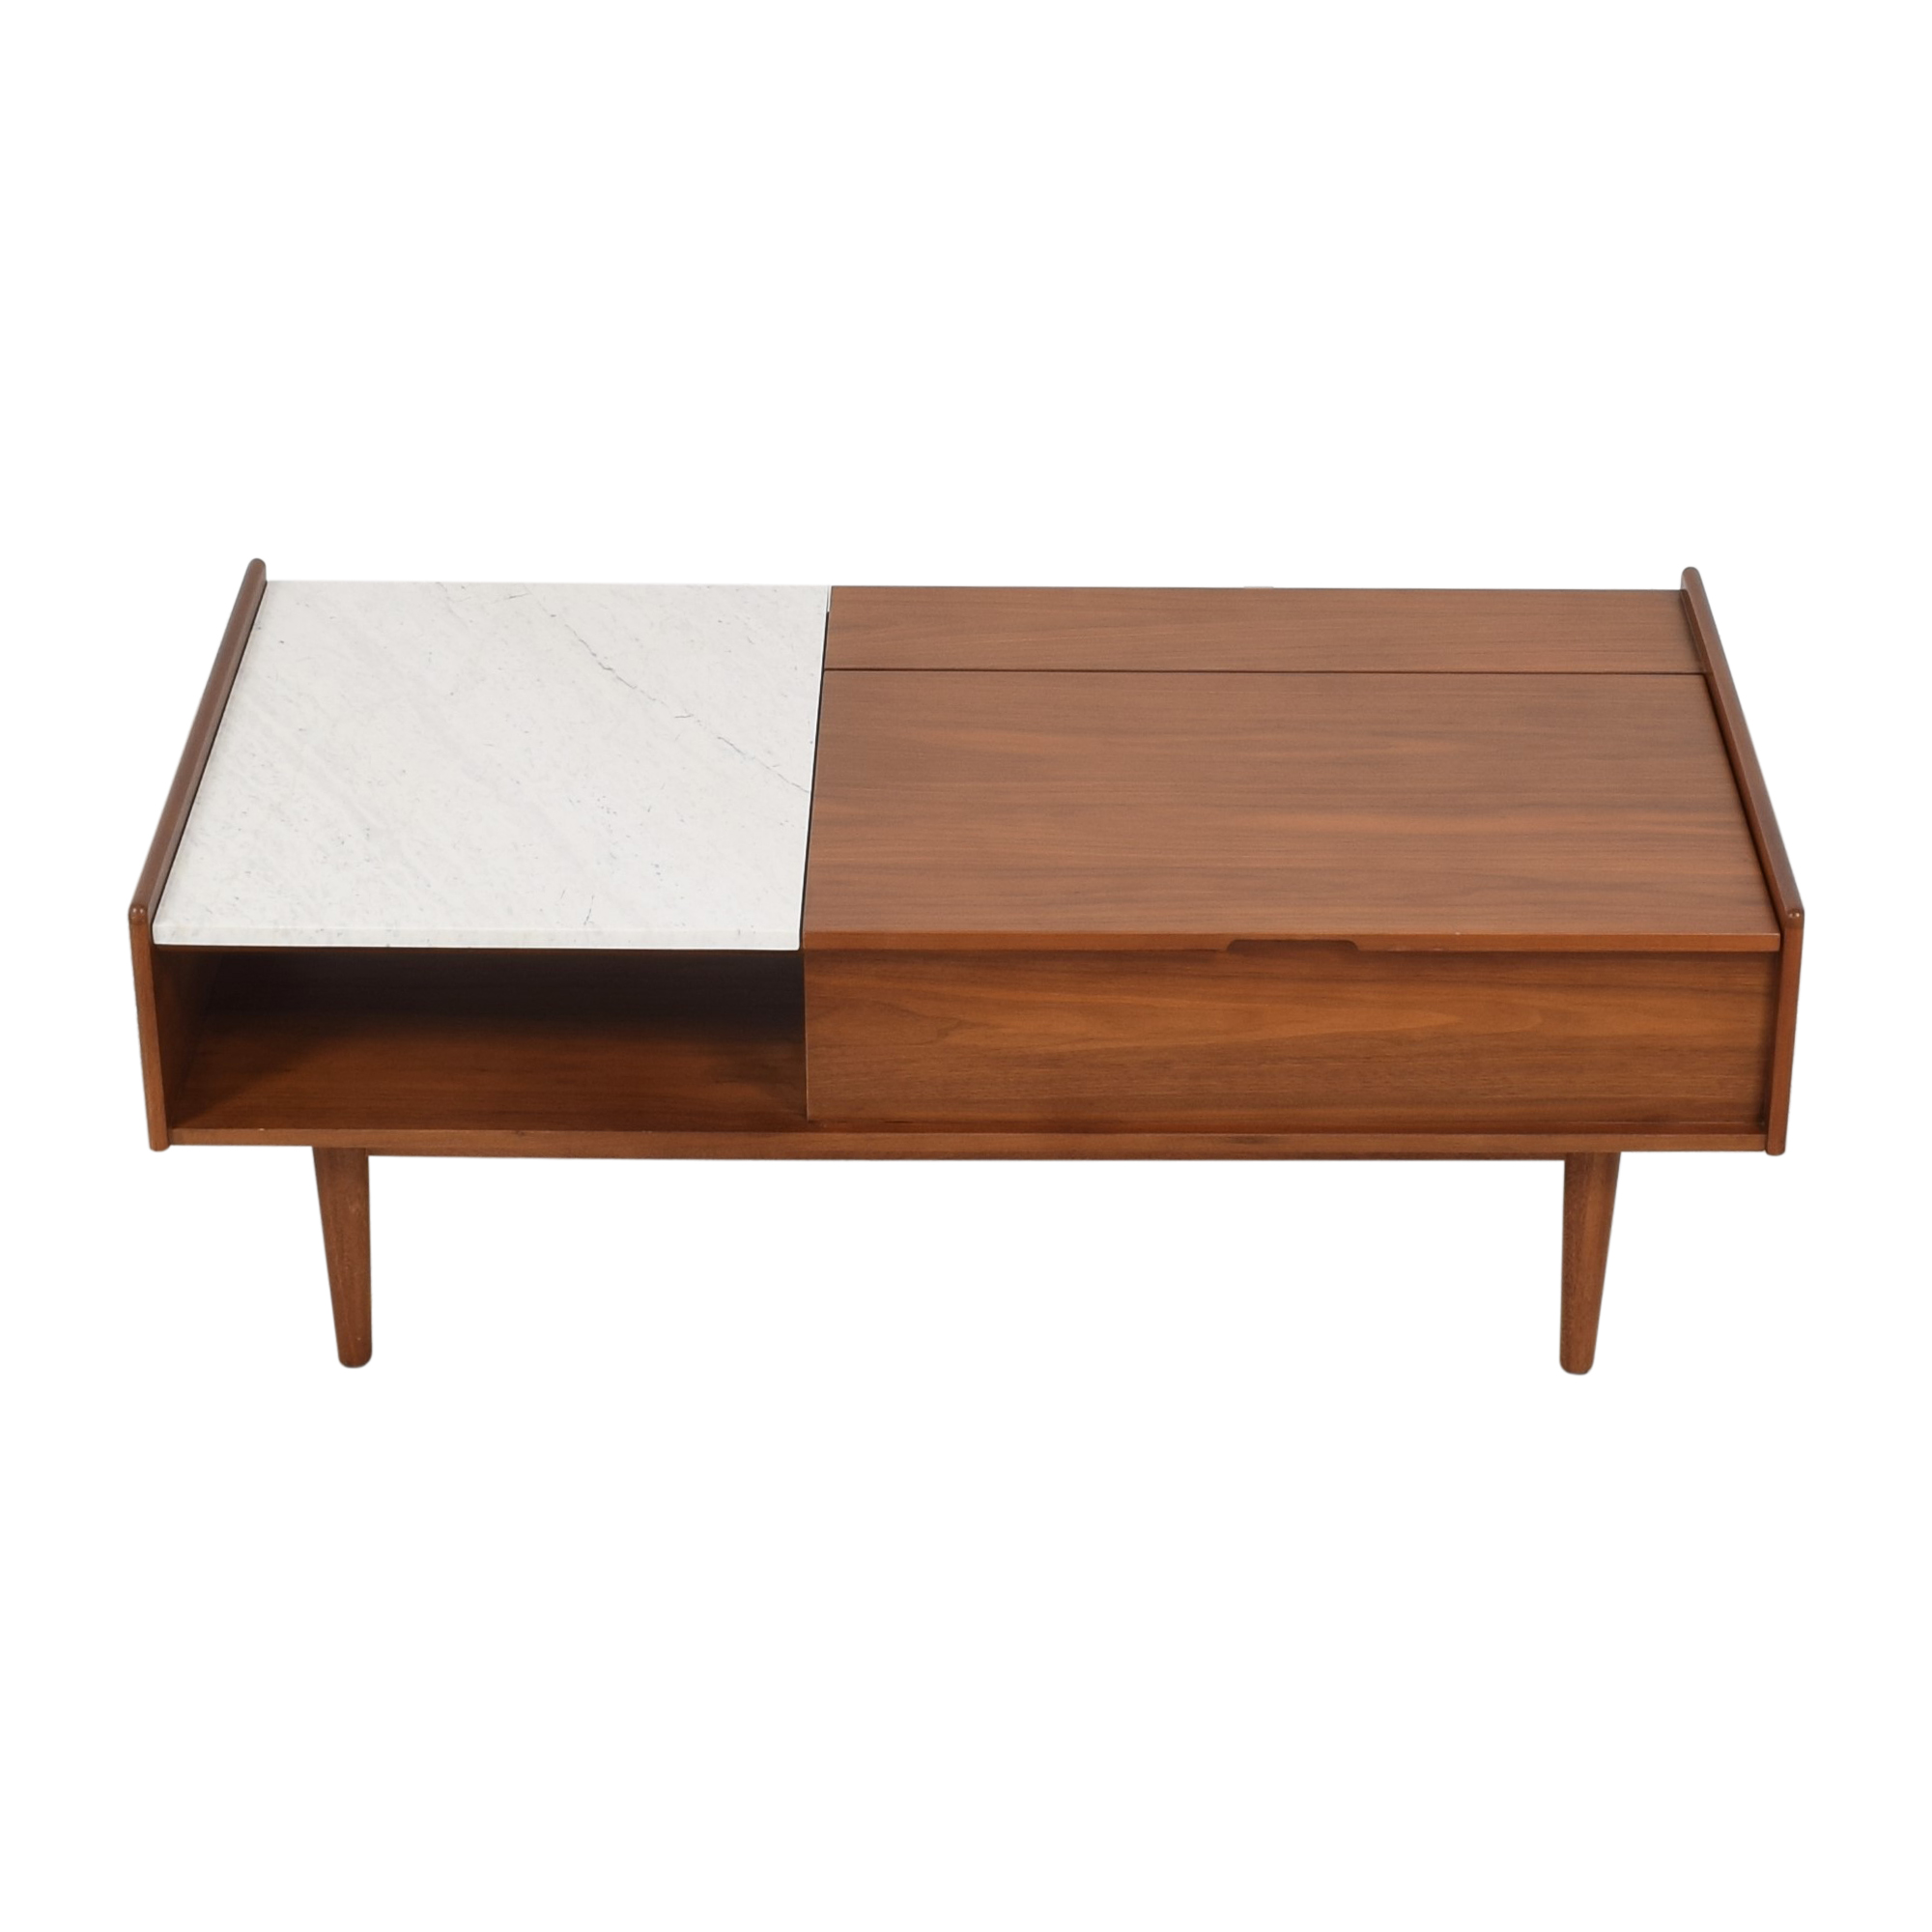 26 off west elm west elm mid century pop up storage coffee table tables